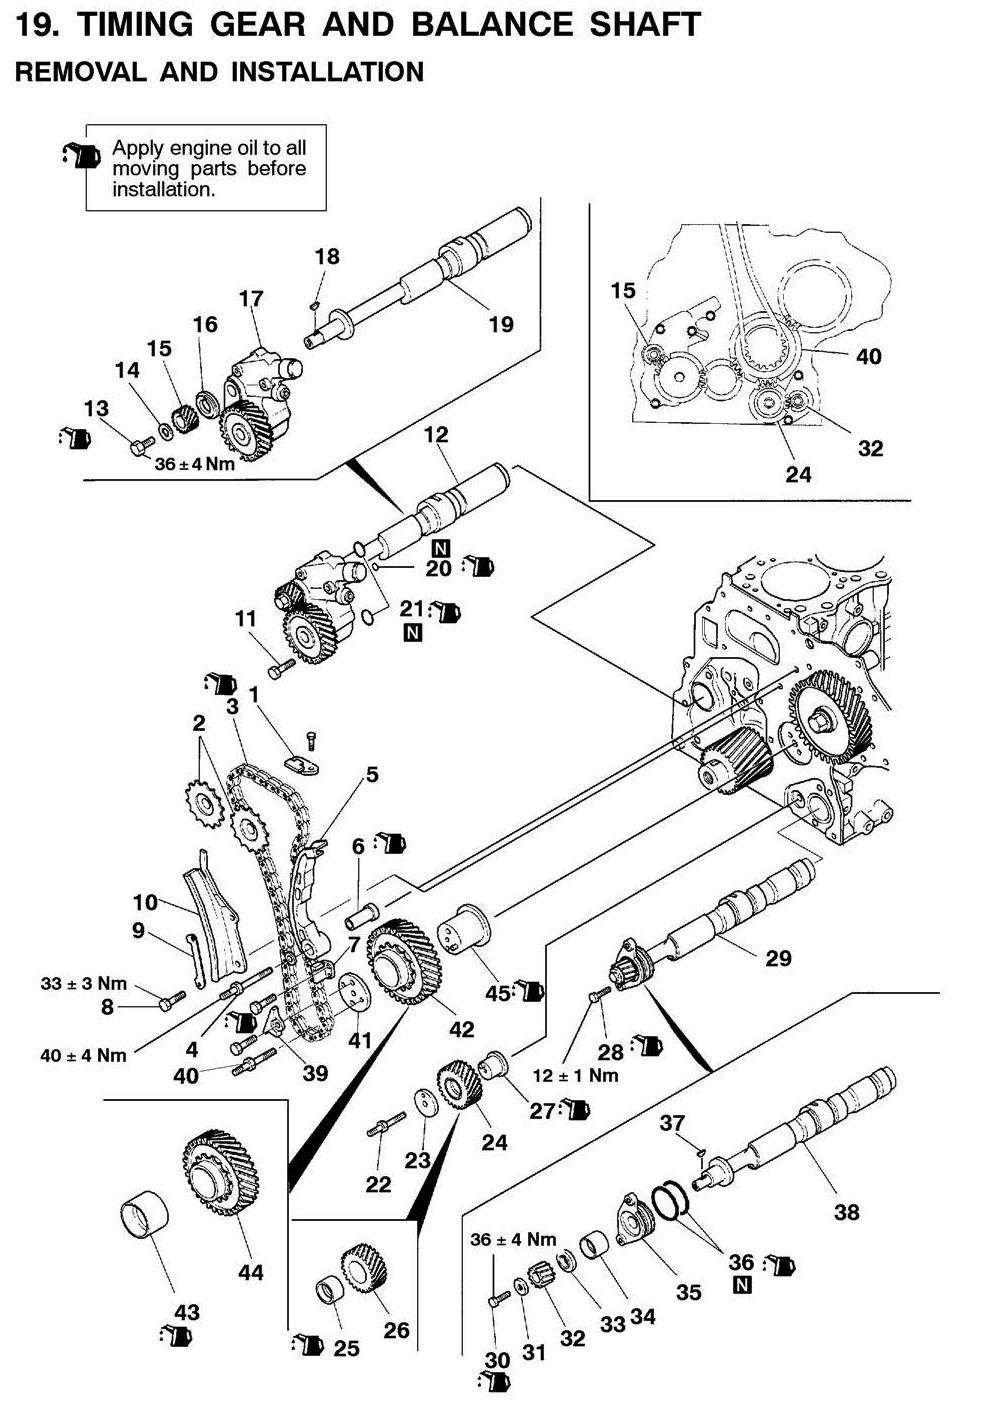 91 240sx Injector Wire Diagram Great Design Of Wiring 1991 Nissan Ford Festiva Stanced 89